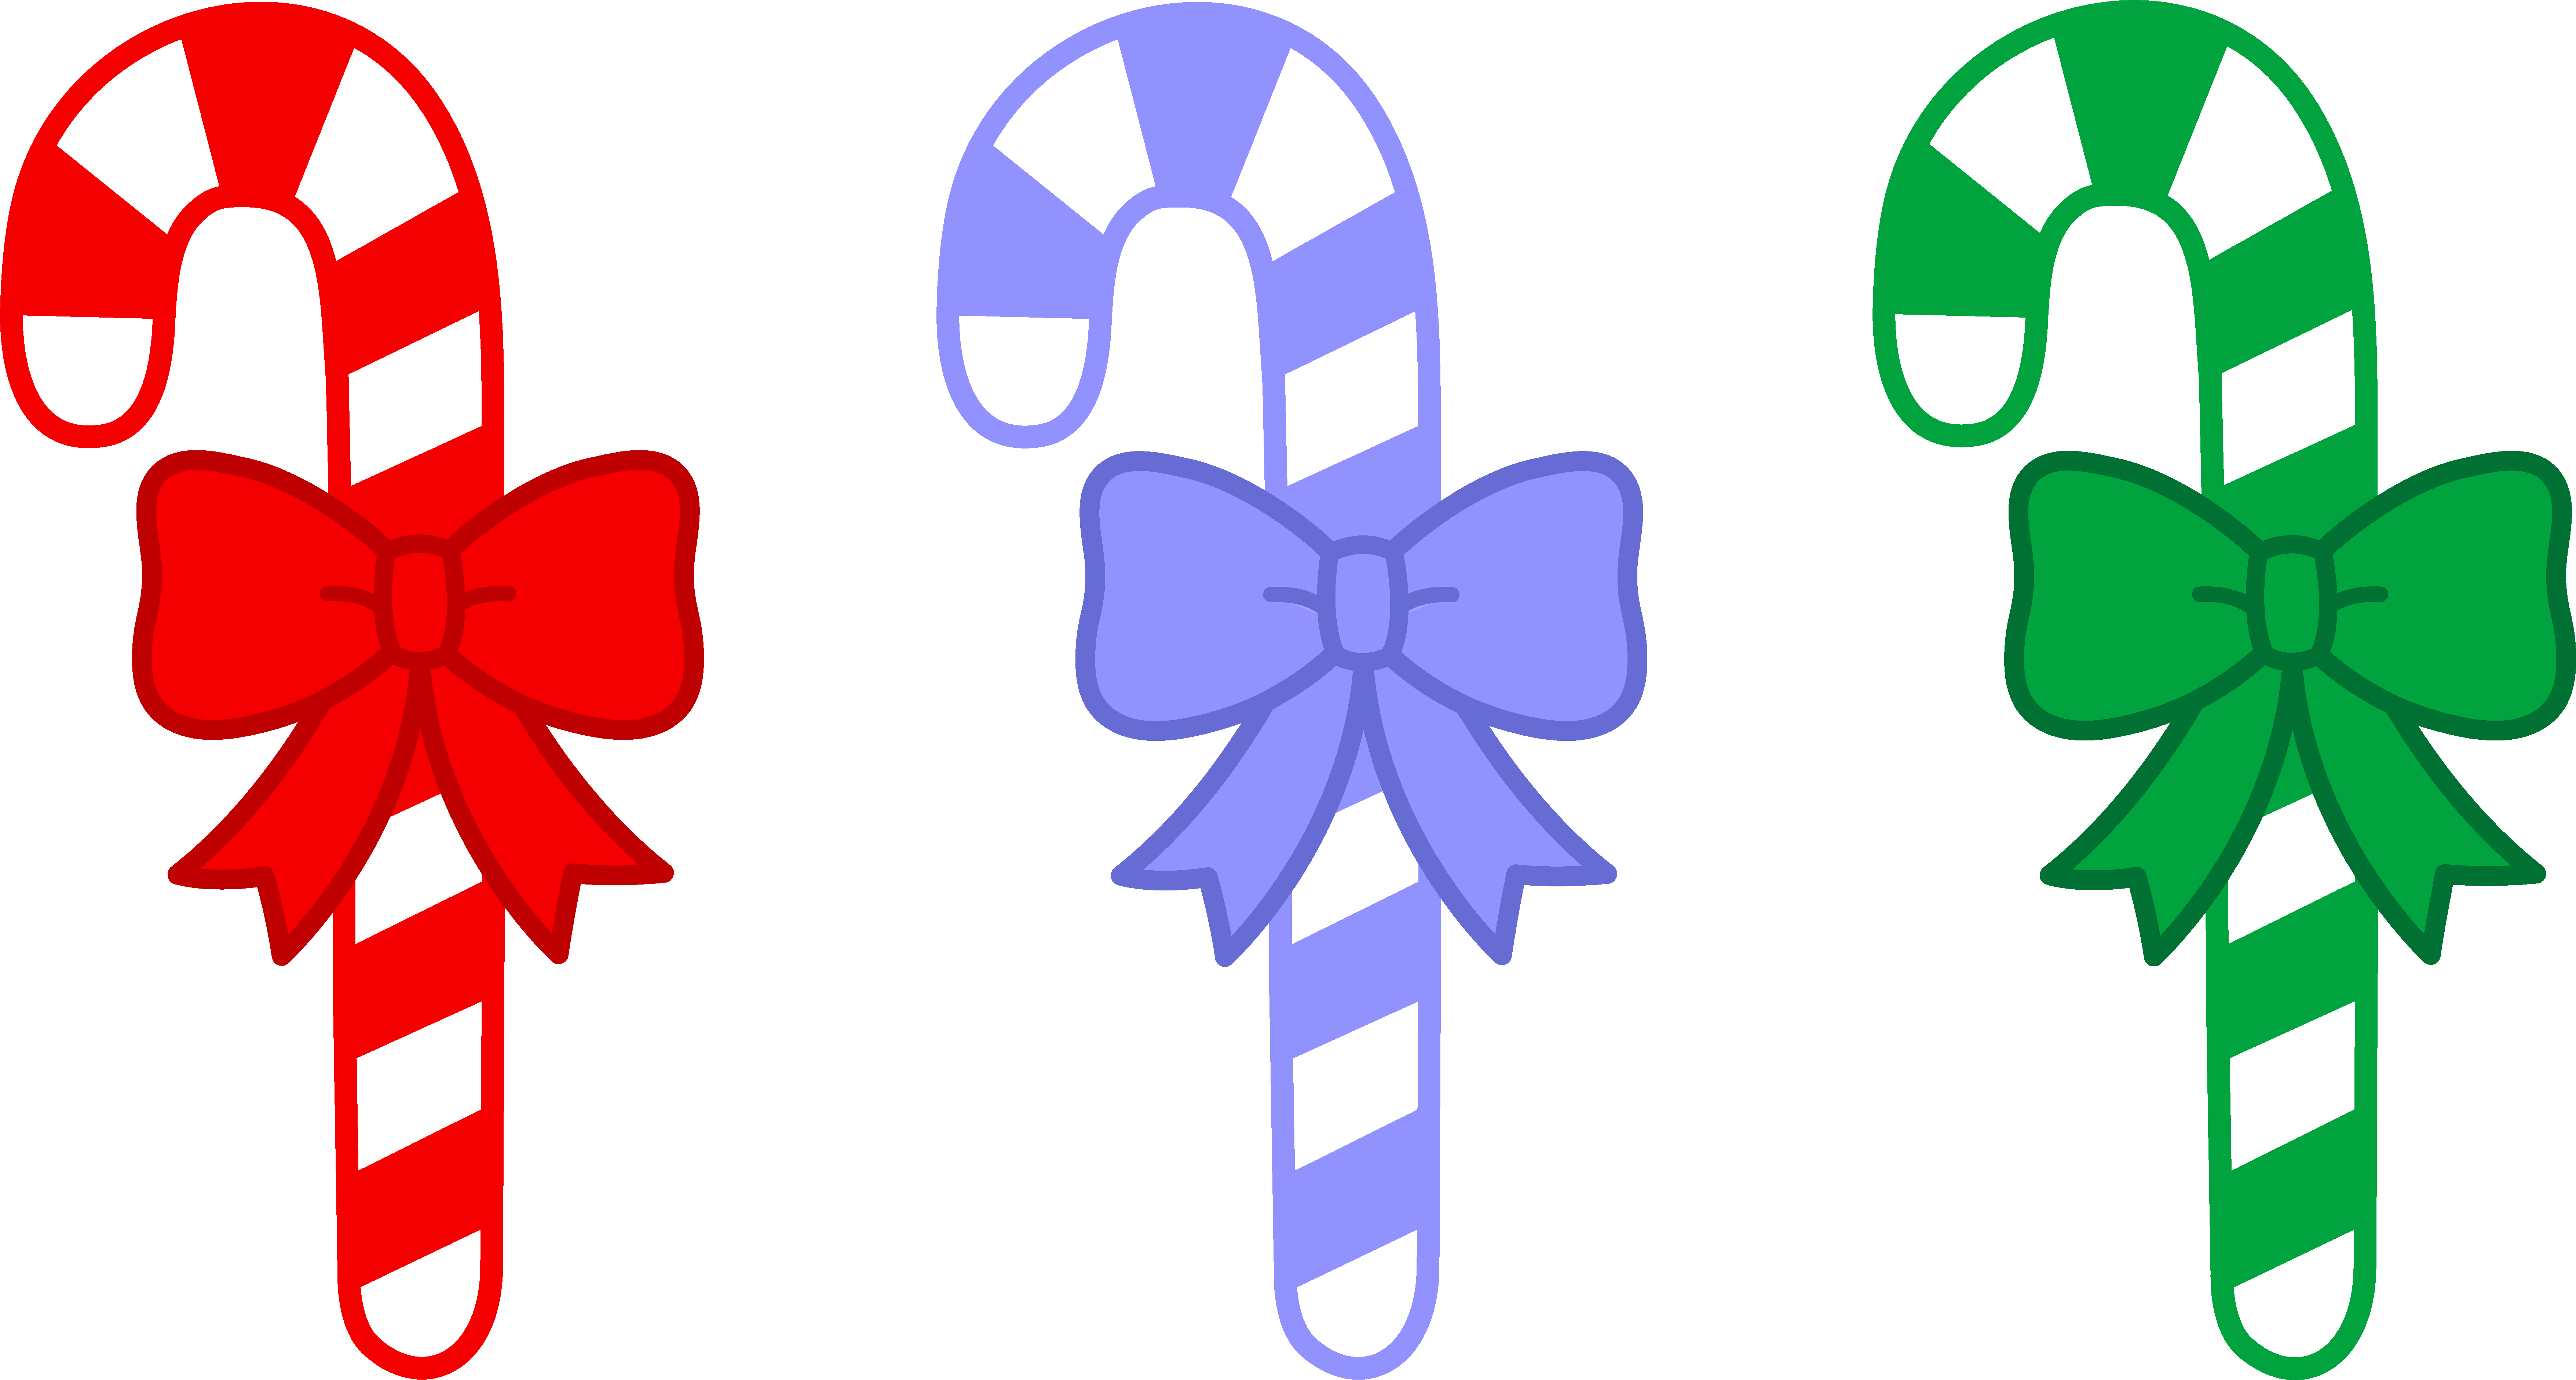 Candy cane bow. Alf img showing clip